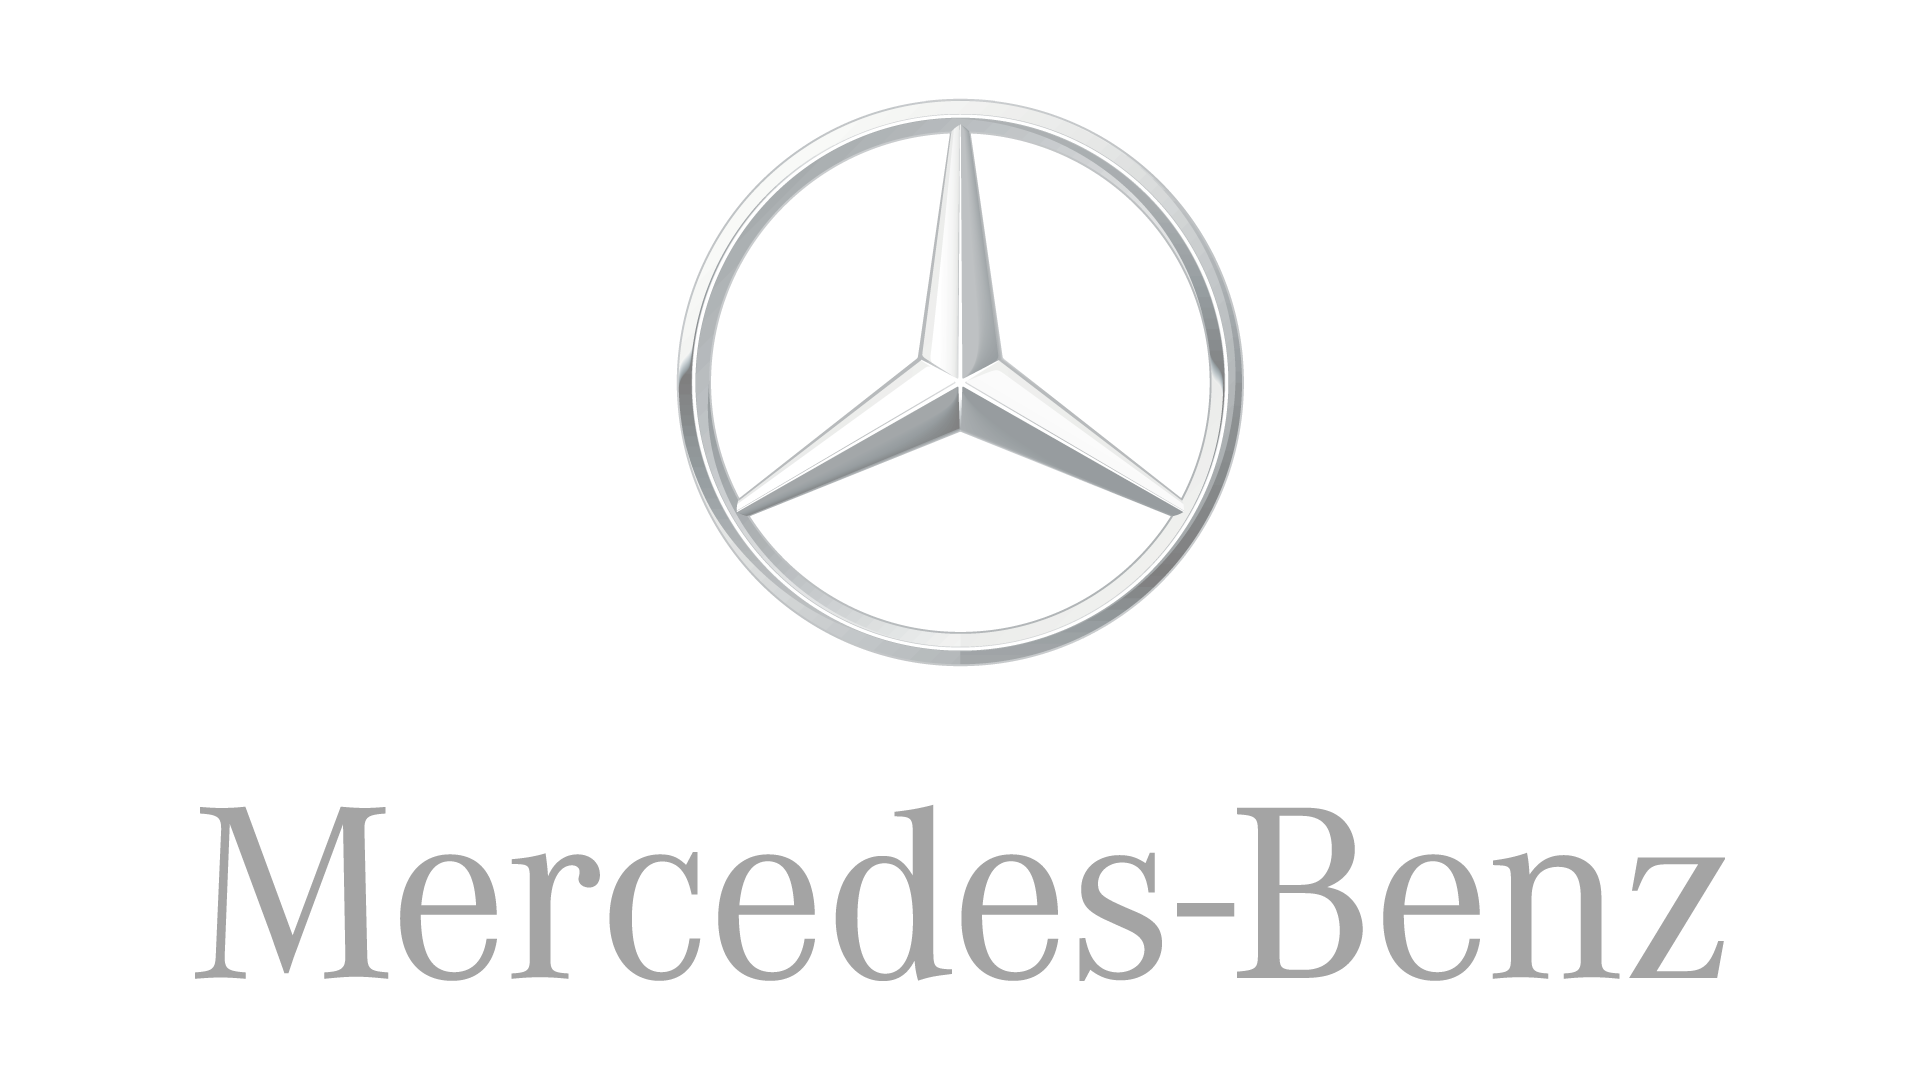 Mercedes-Benz-logo-2011-1920x1080 copy.png